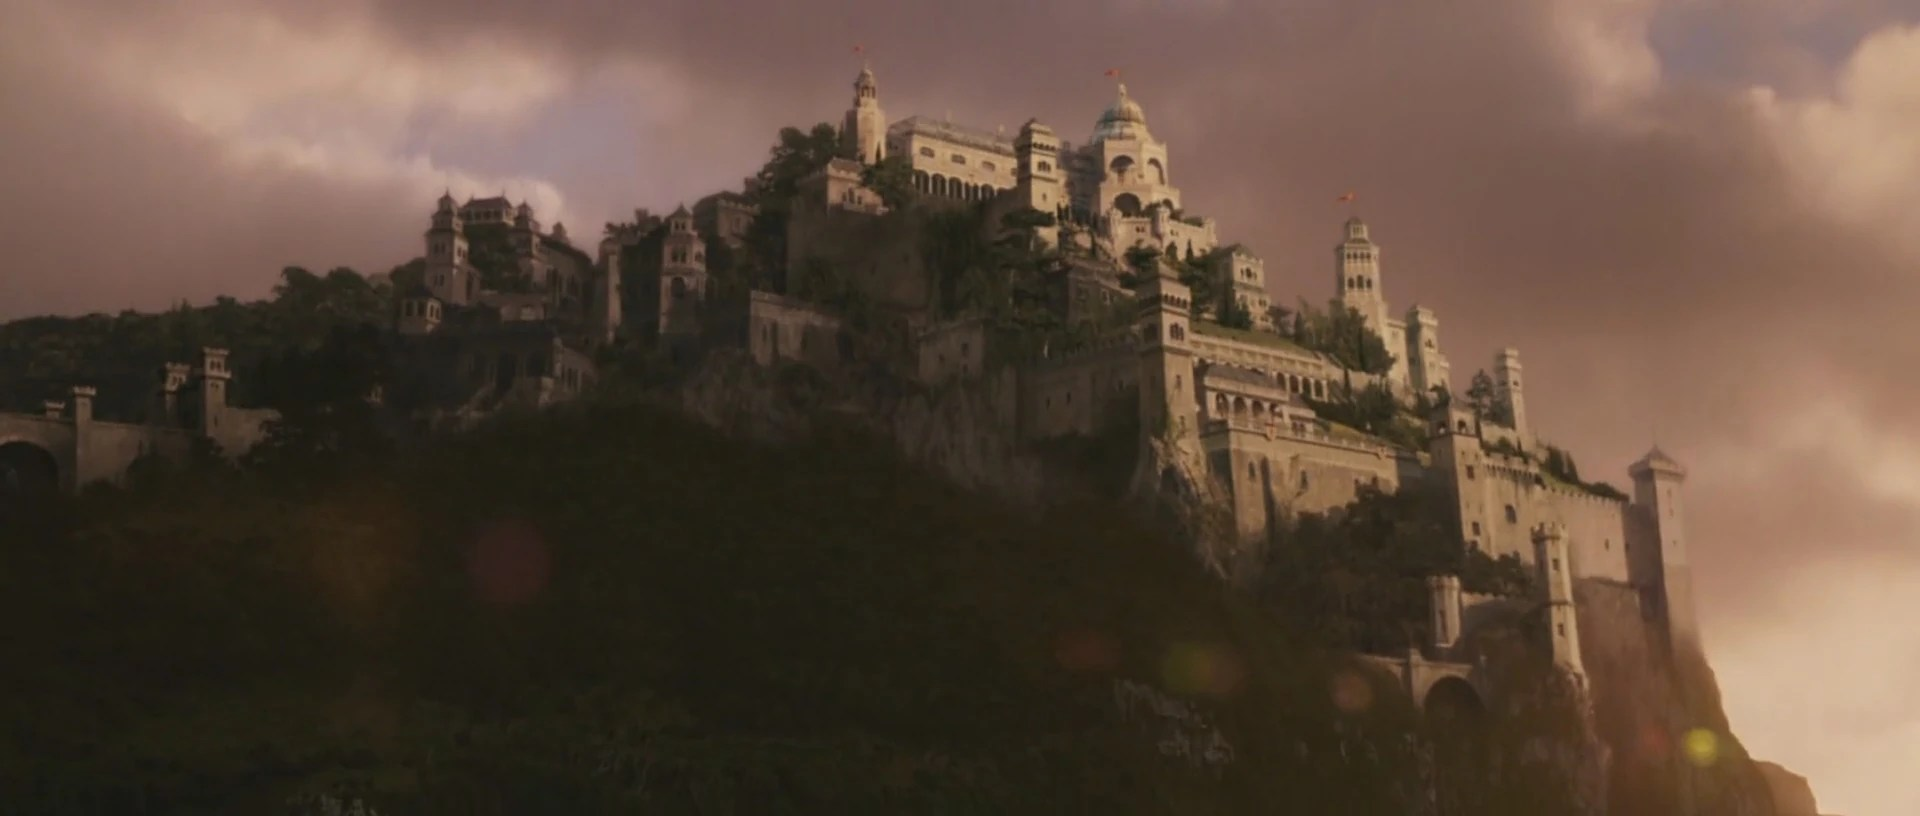 Cair Paravel The Chronicles Of Narnia Wiki Fandom